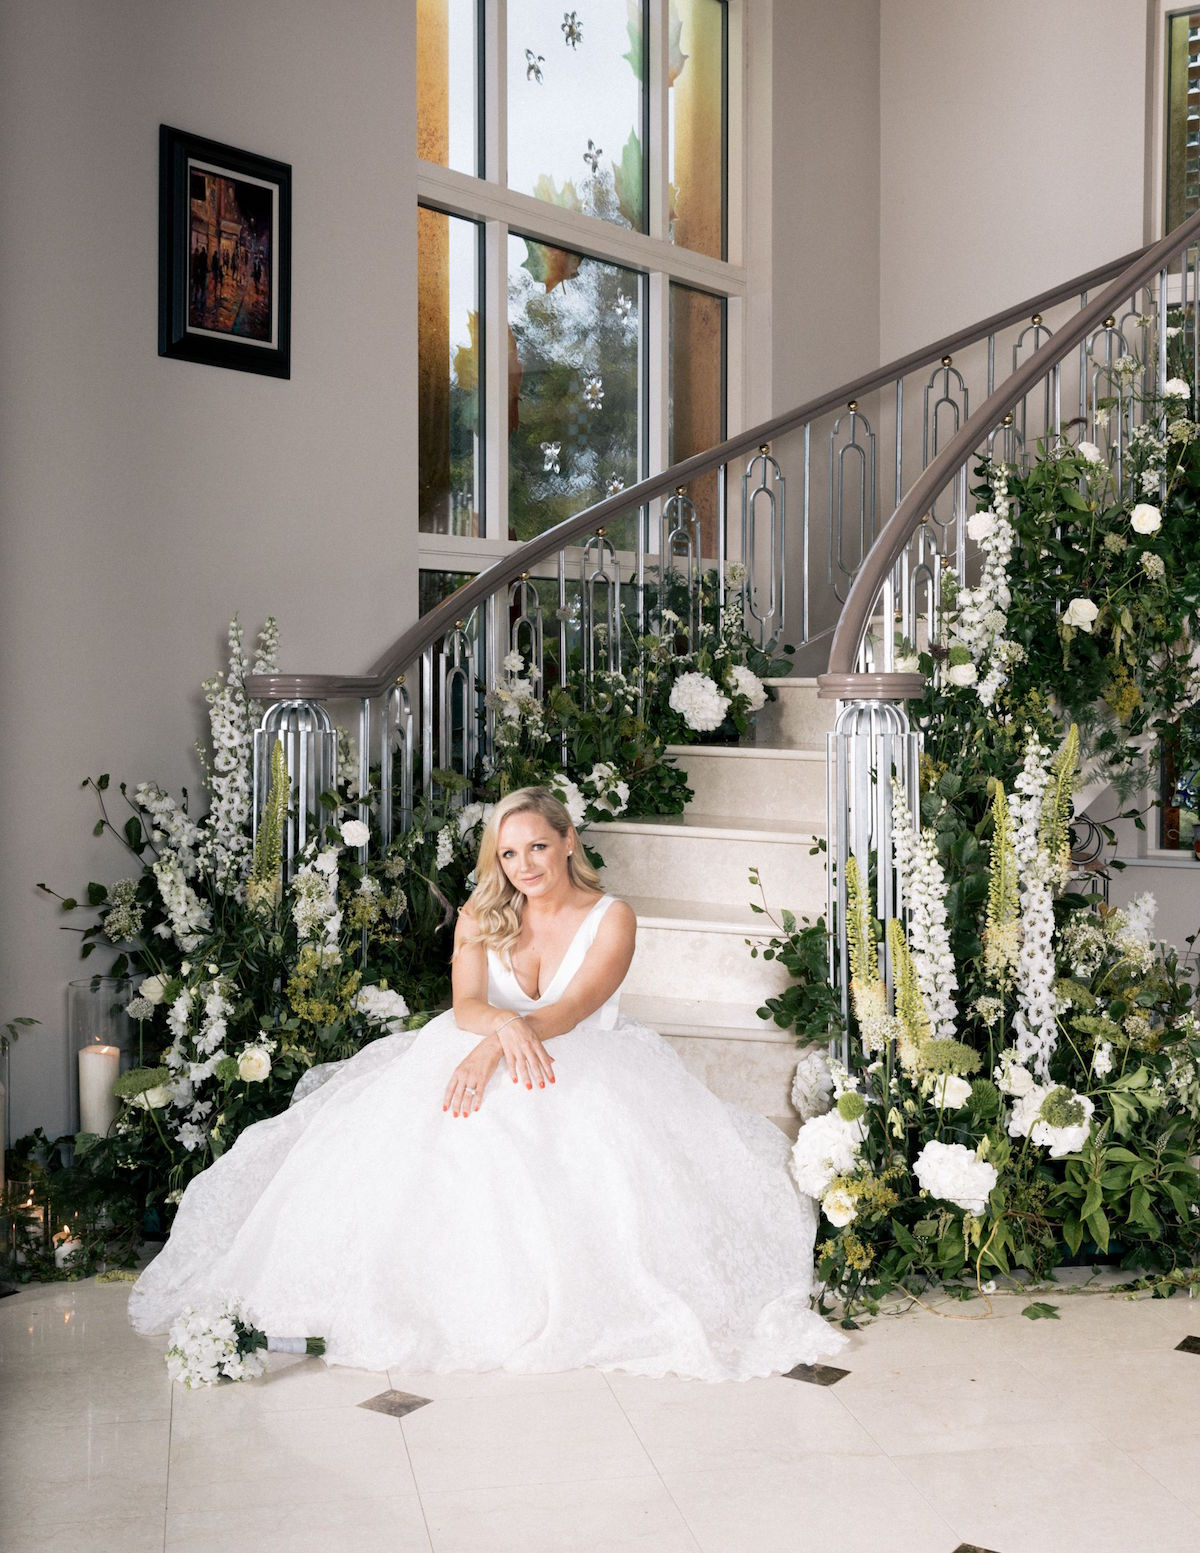 floral staircase at home wedding